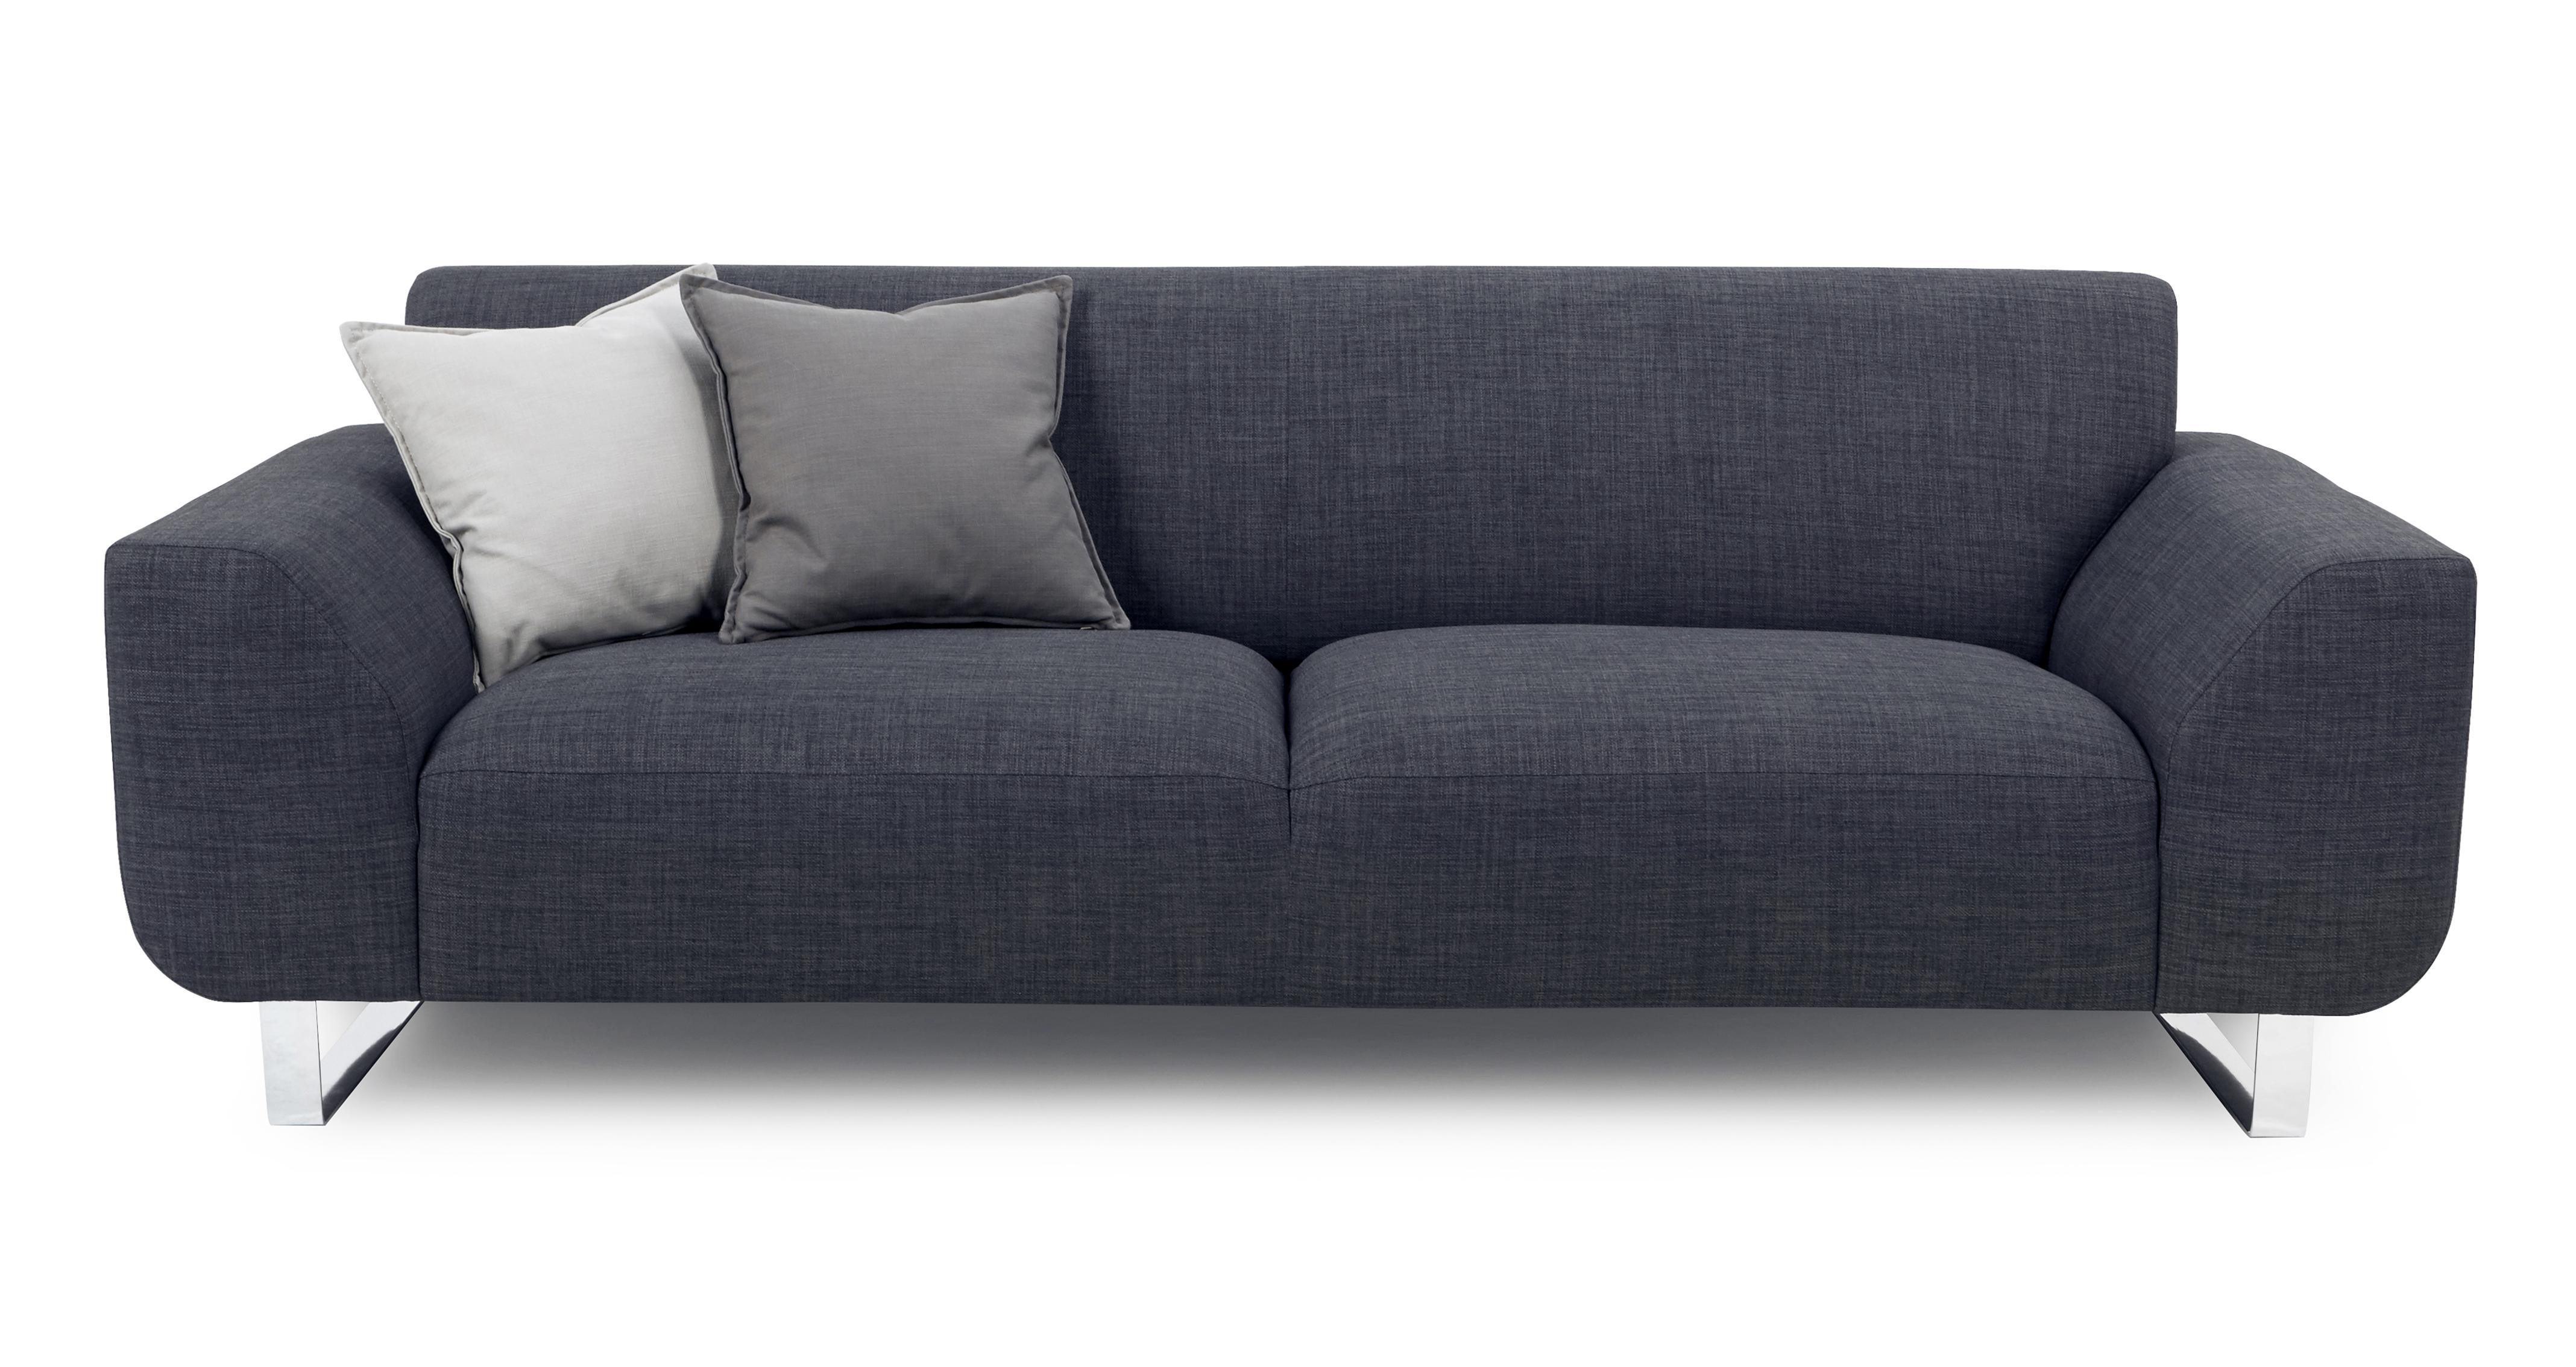 Hardy 3 Seater Sofa Revive | DFS